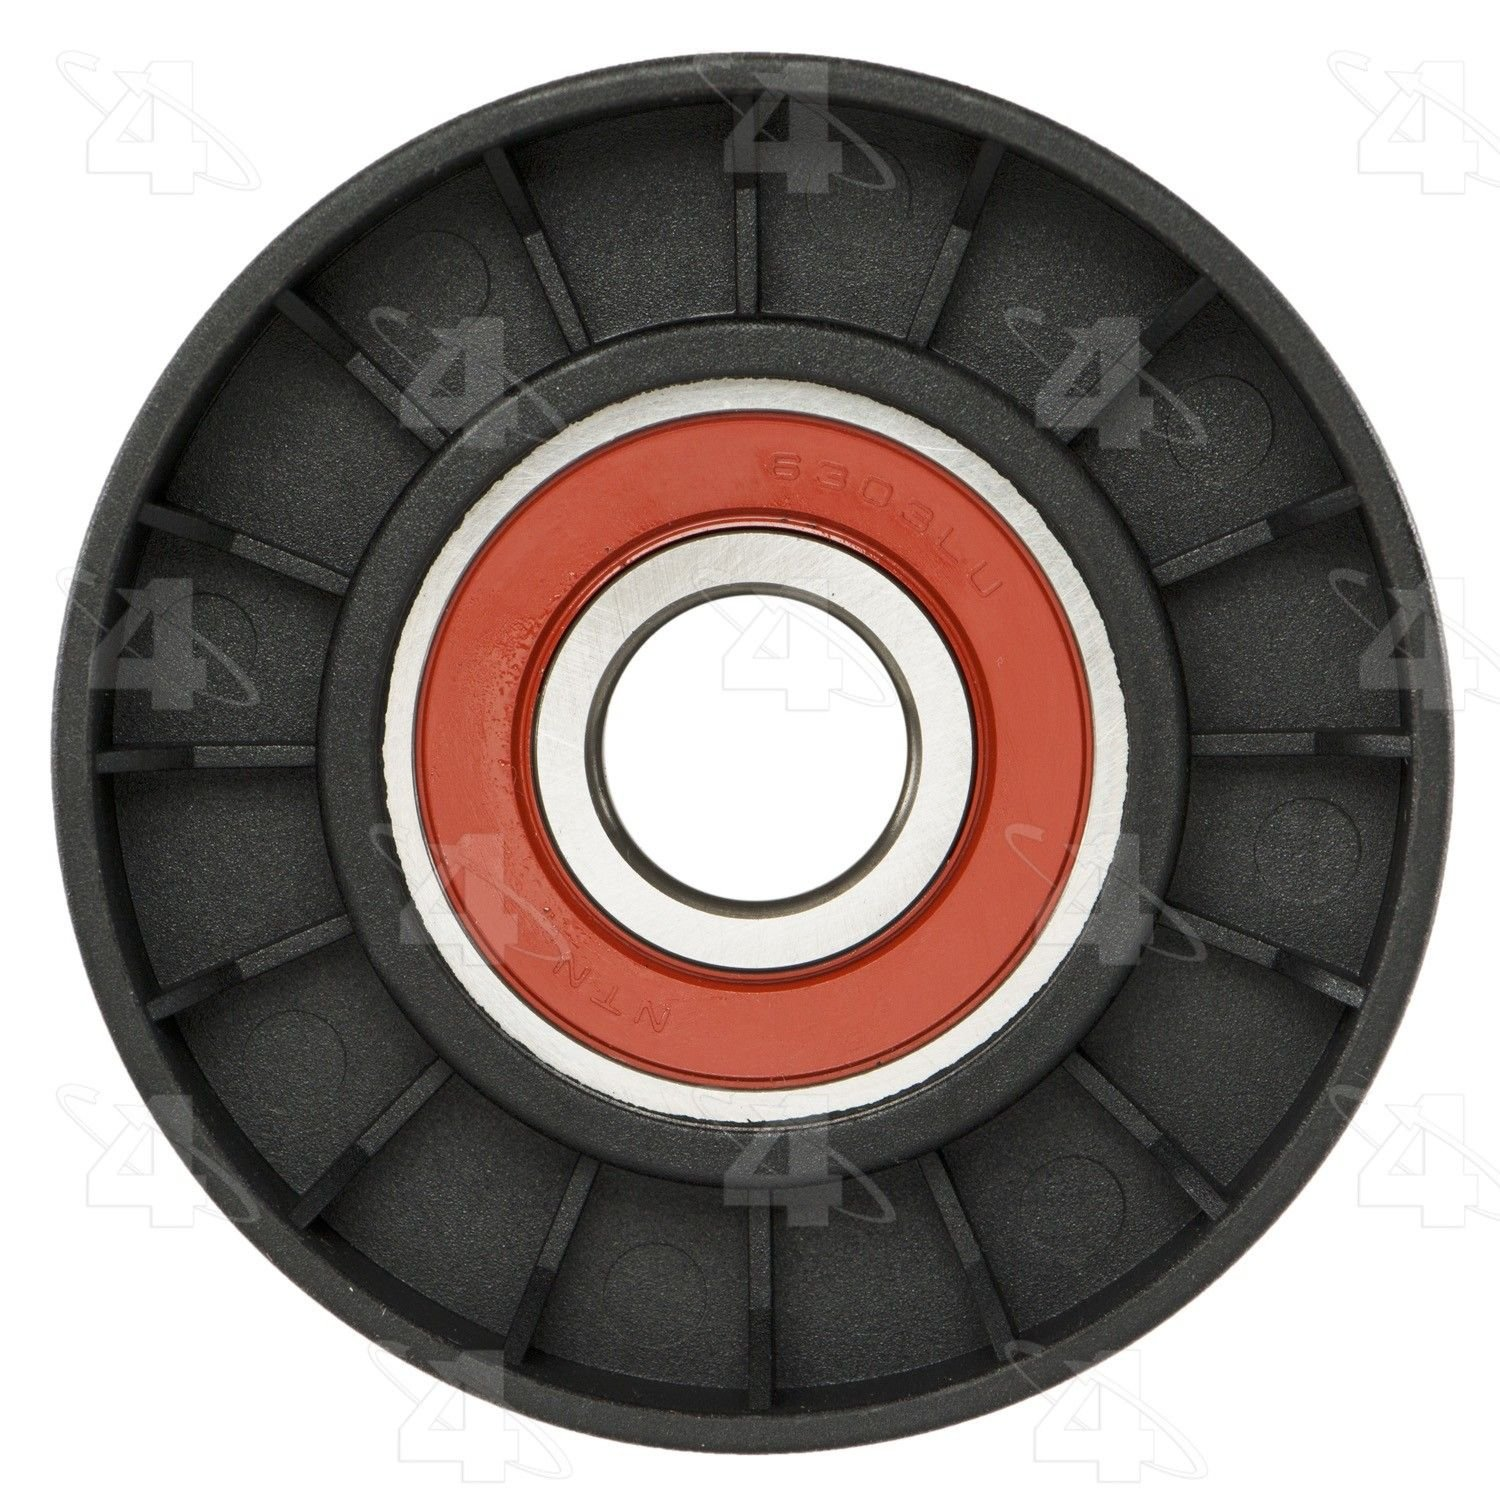 Subaru Legacy Drive Belt Idler Pulley Replacement Dayco Dorman 2000 Outback Fan 2010 6 Cyl 36l Four Seasons 45043